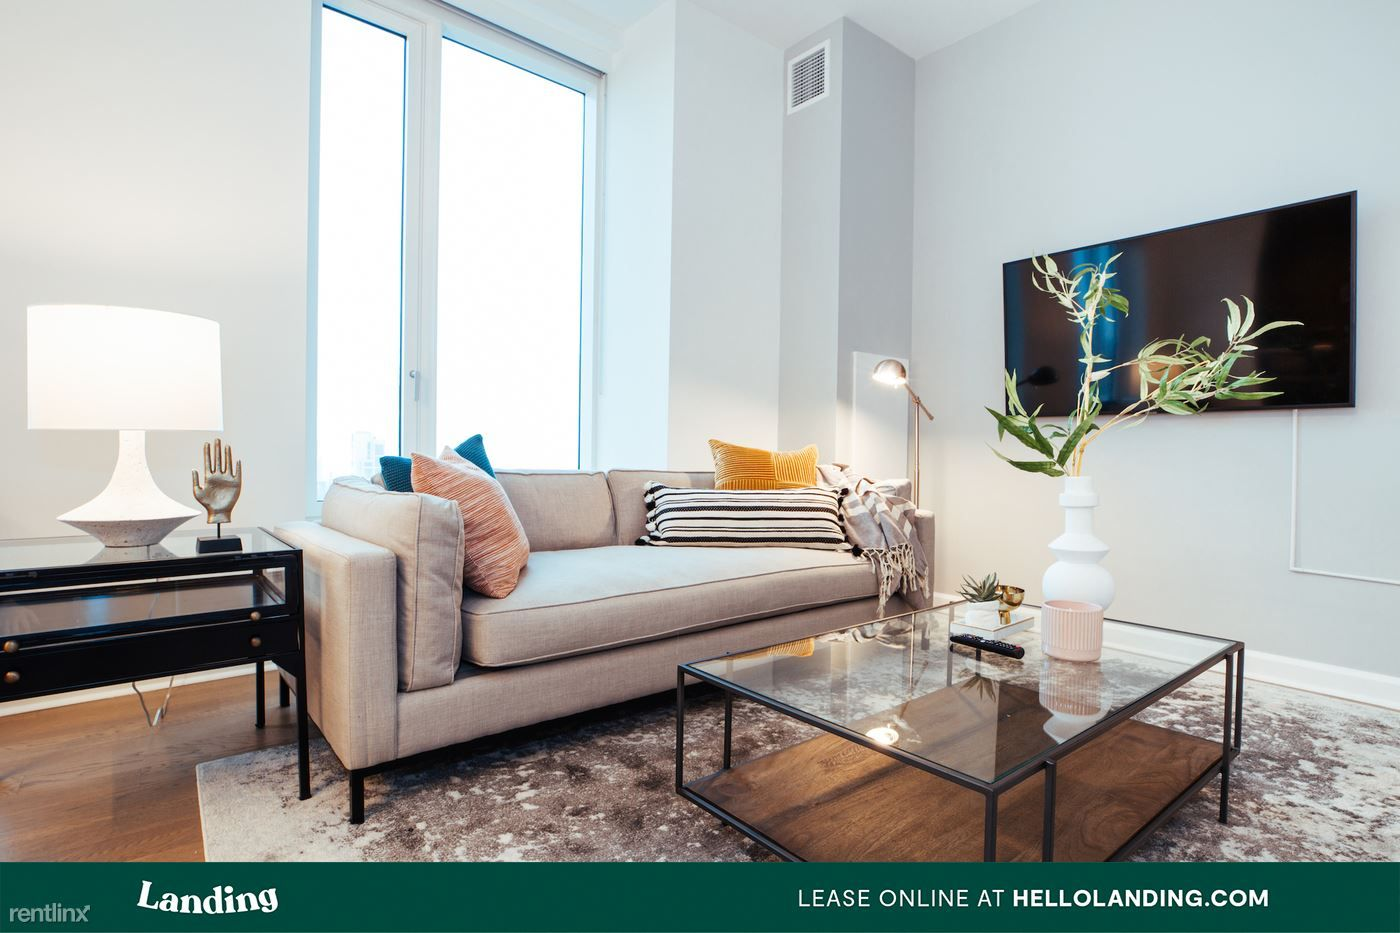 Landing Furnished Apartment The Gallery rental